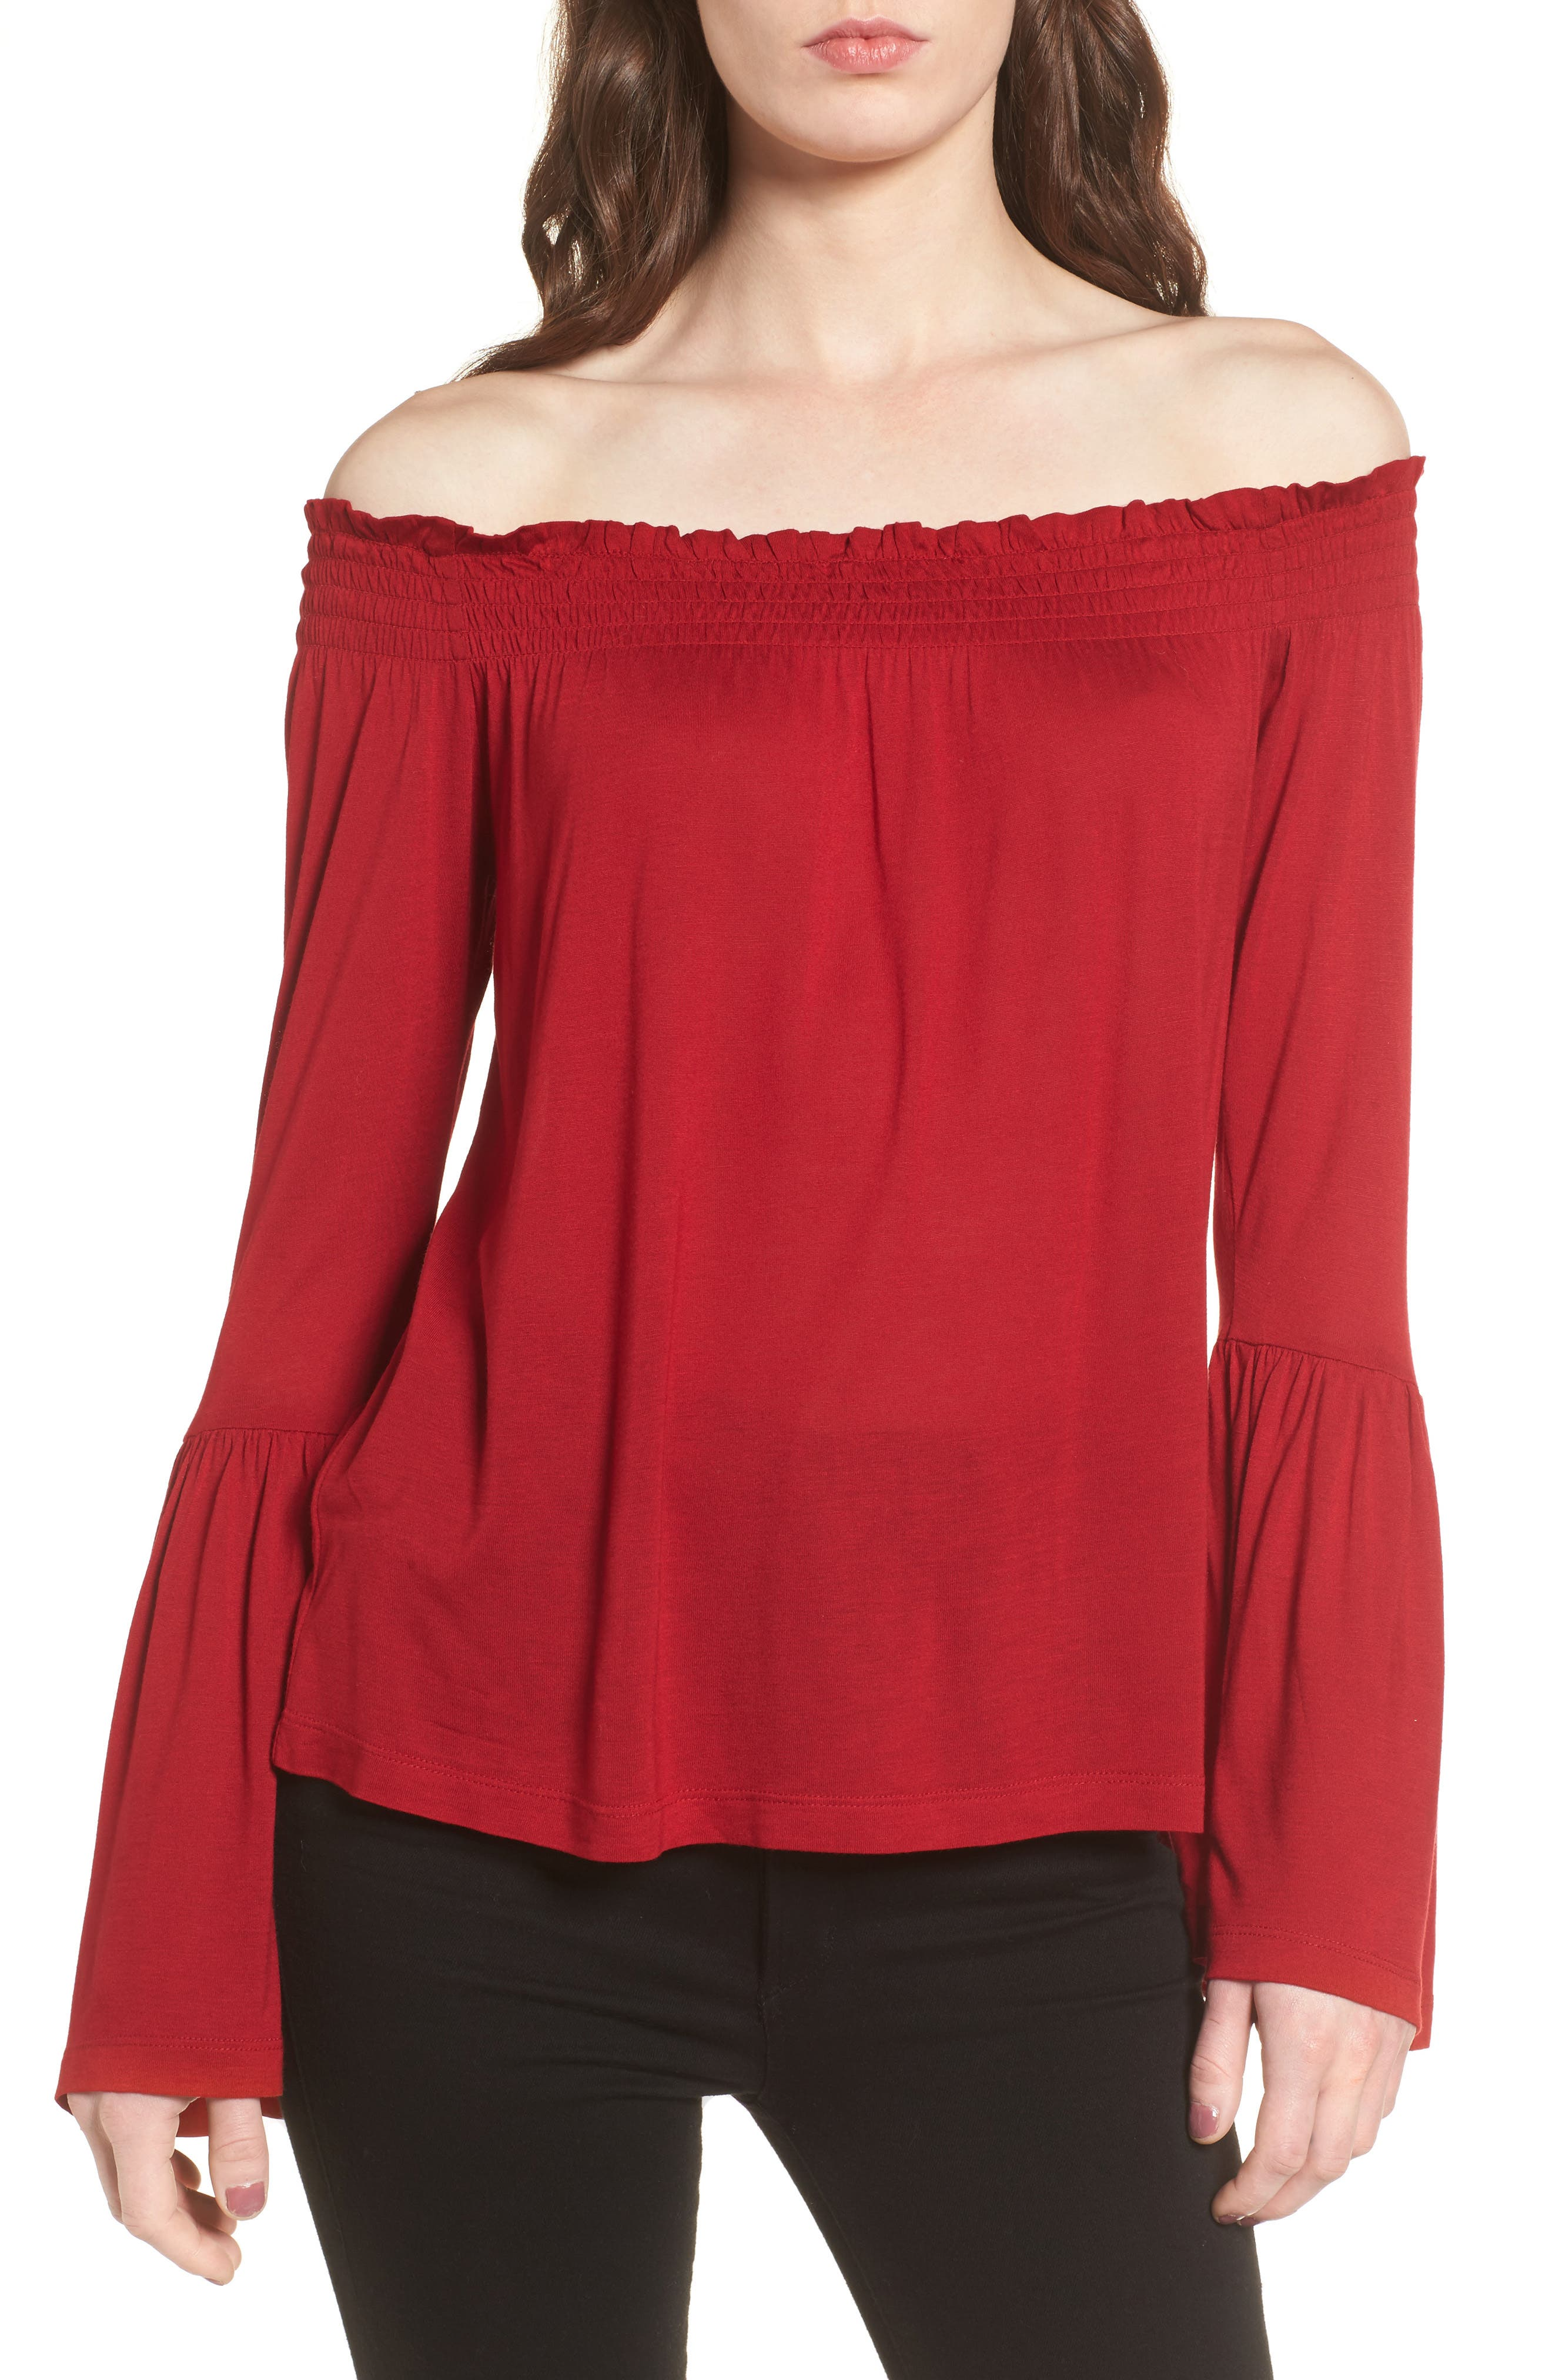 Main Image - cupcakes and cashmere Luck Off the Shoulder Top